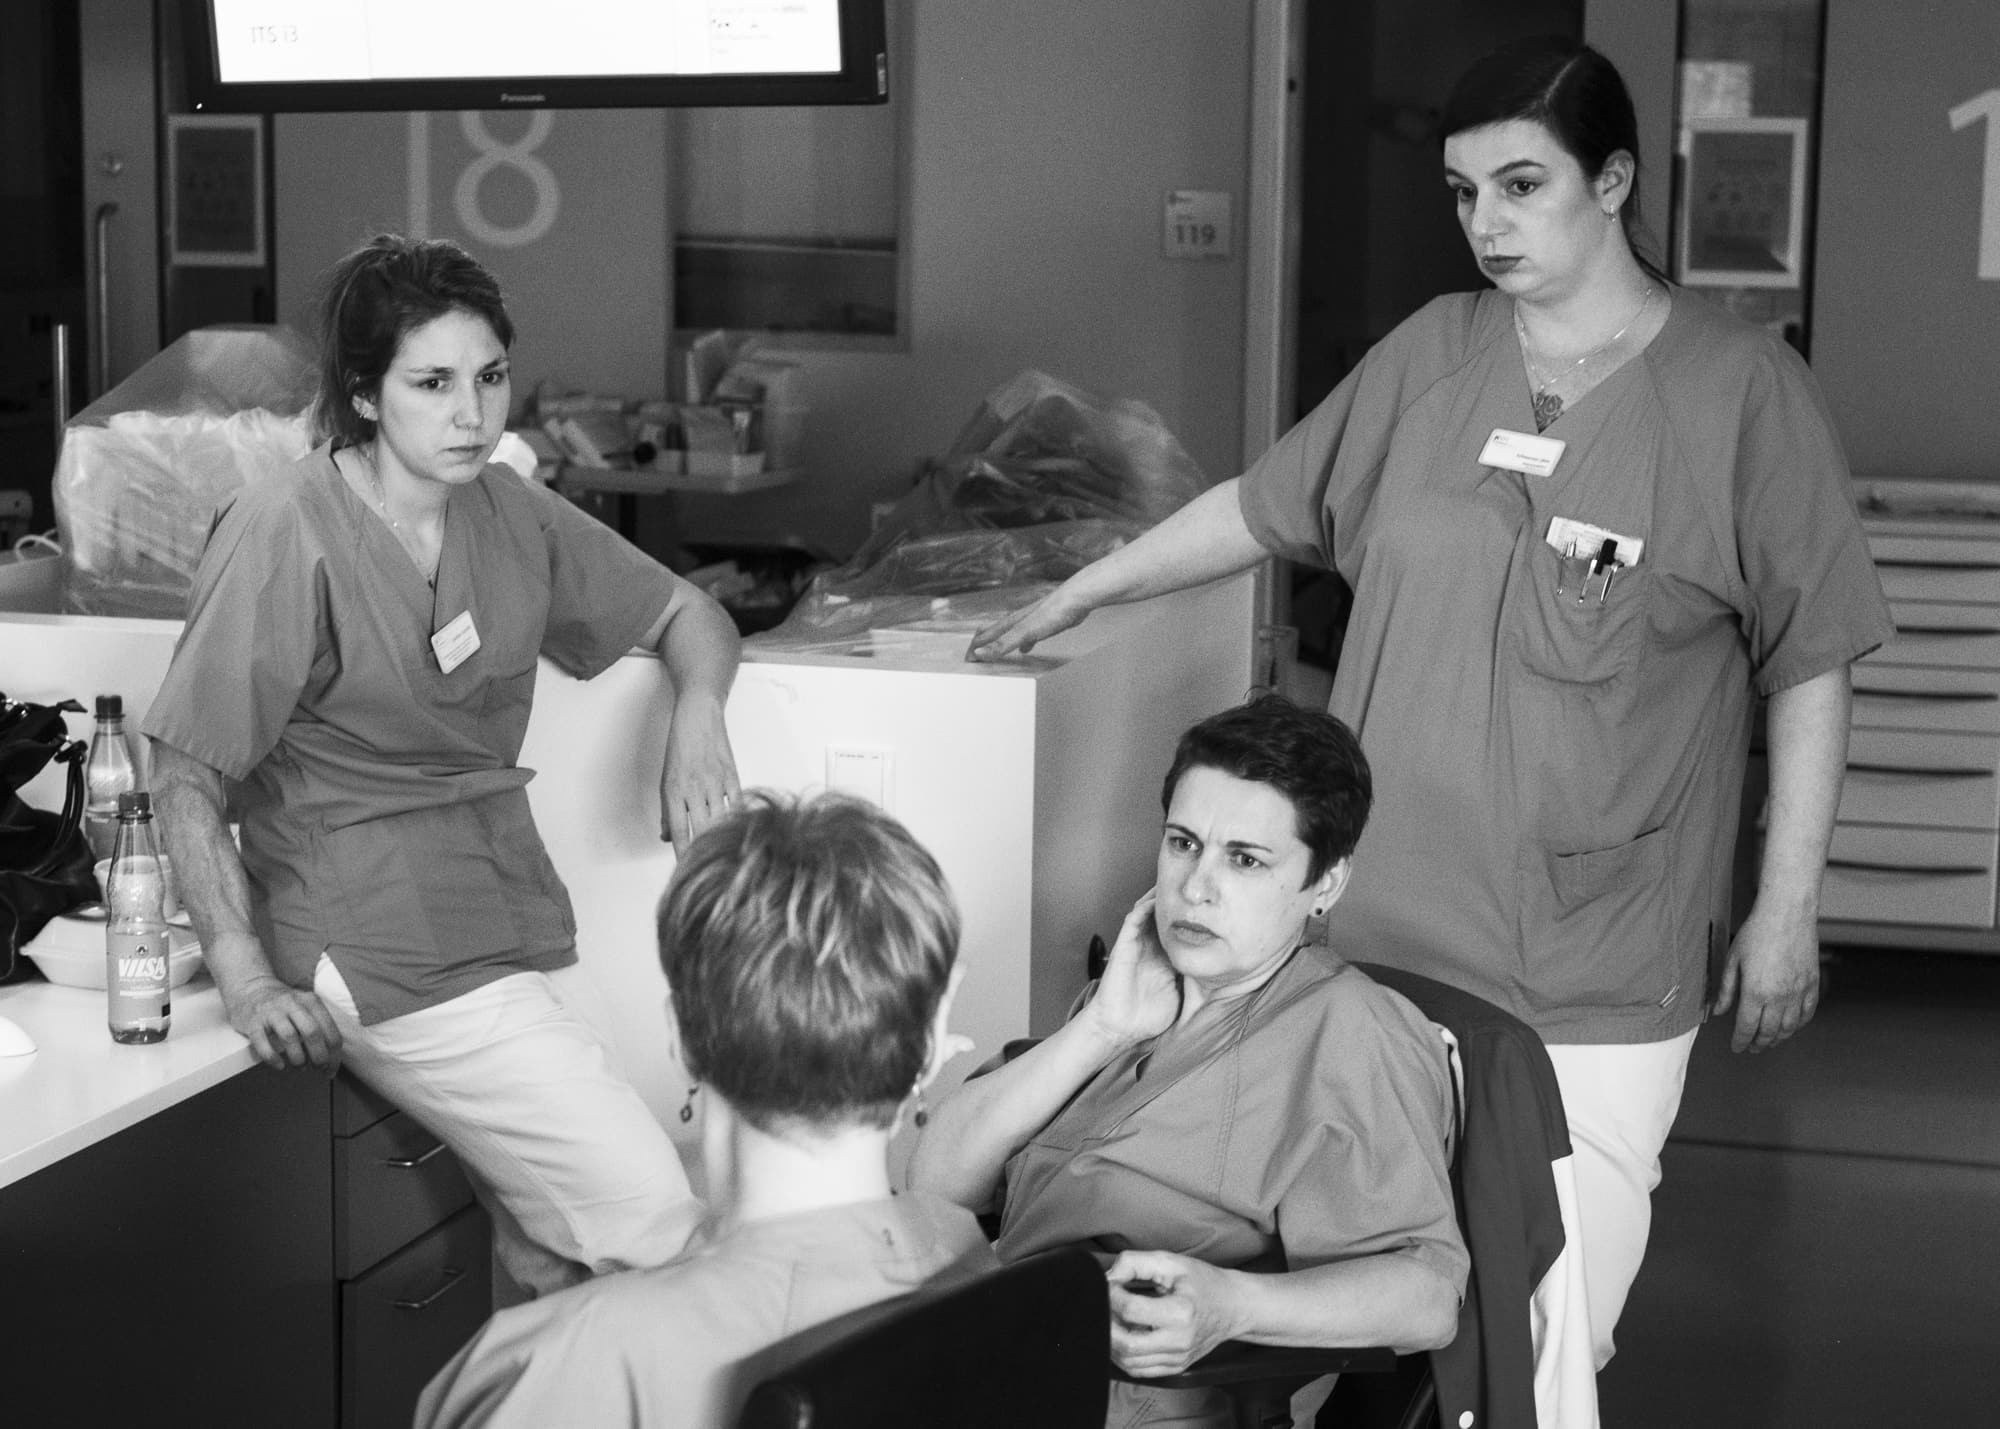 Nicht muede werden — a group of female nurses in a discussion on intensive care station at night